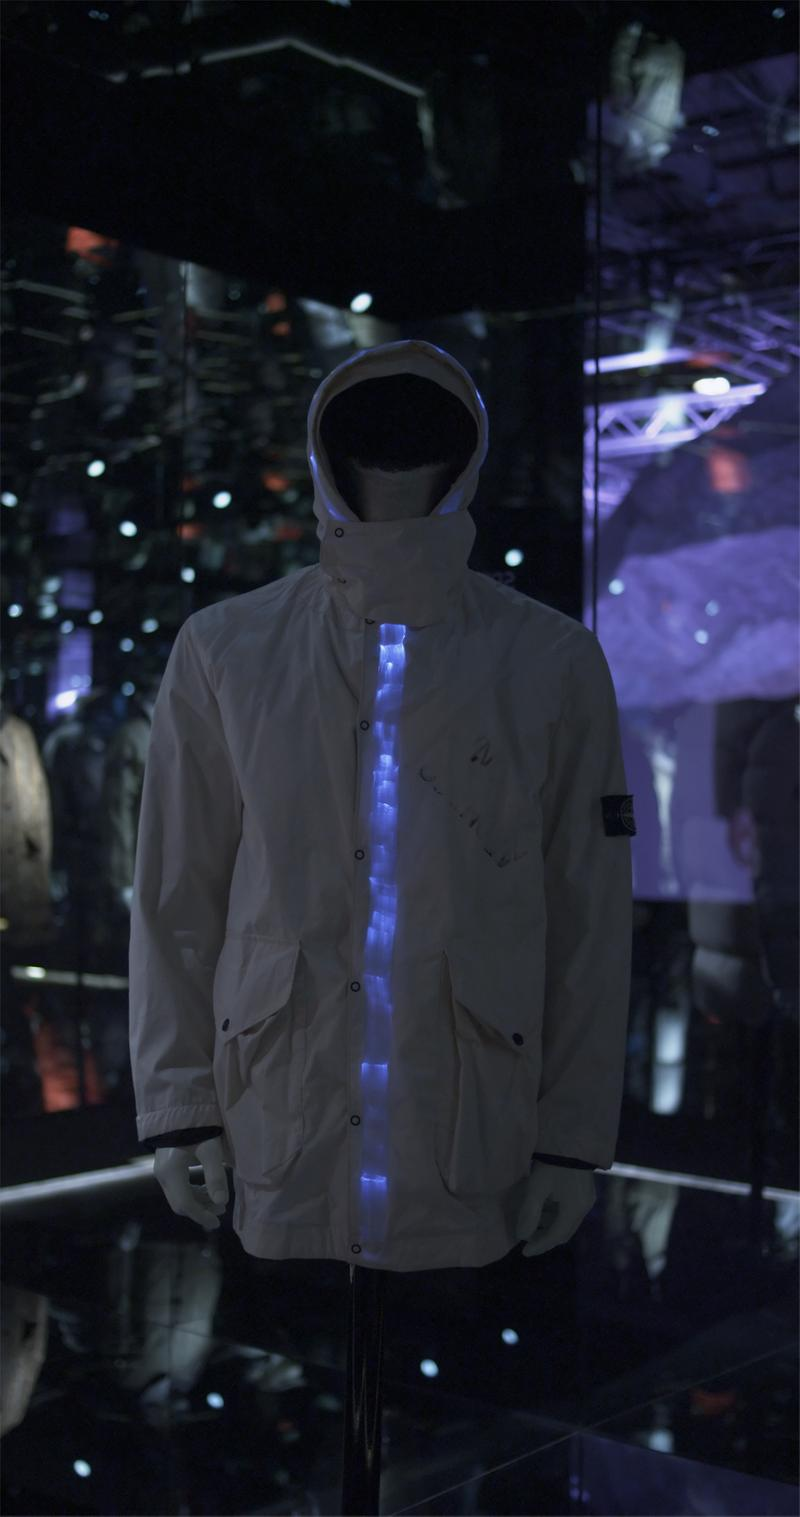 Hooded parka with blue zipper placket, flap pockets and Stone Island badge on upper left sleeve, displayed on mannequin bust